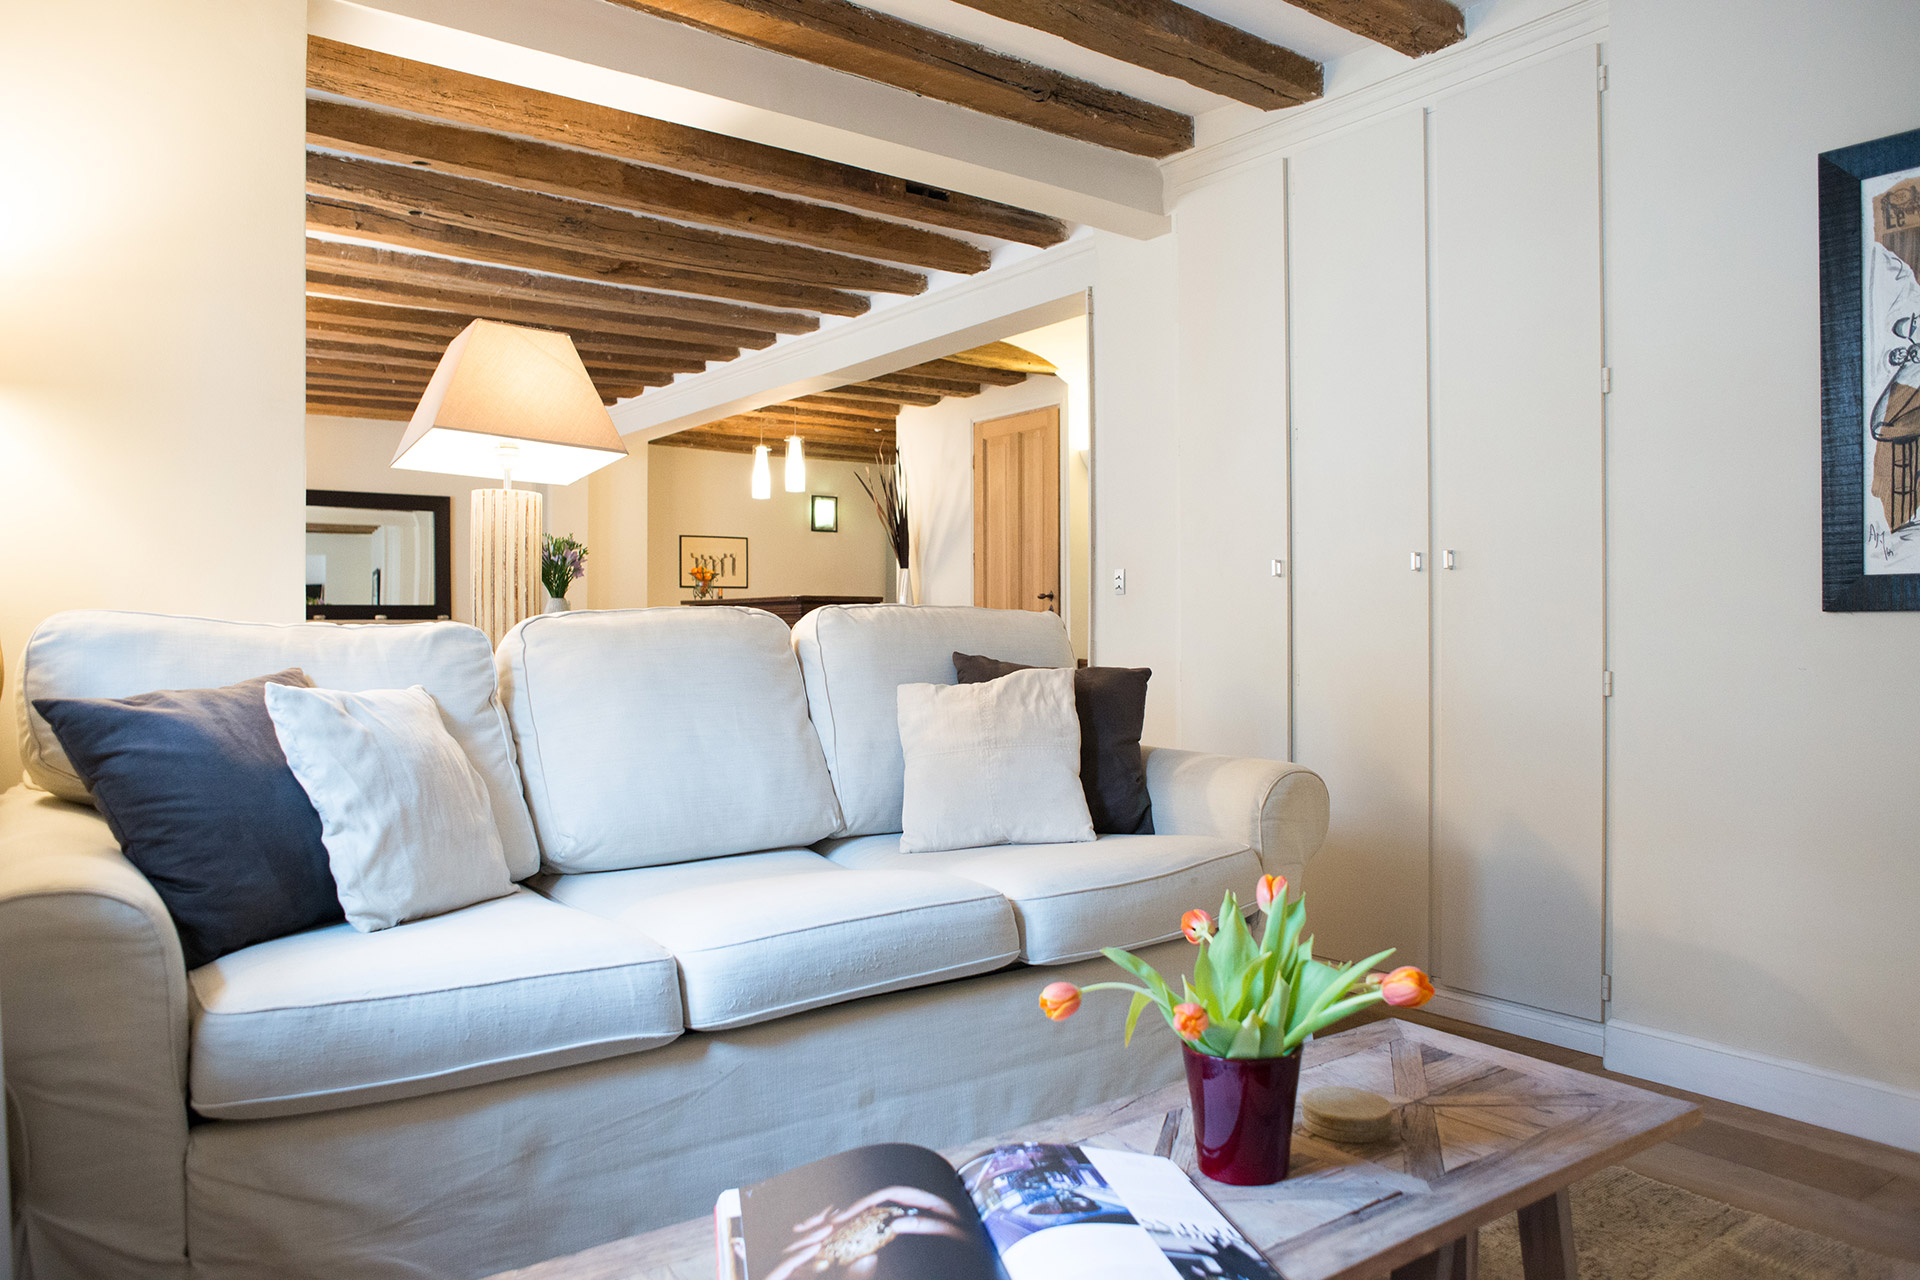 A warm, French countryside vibe in the Brittany vacation rental offered by Paris Perfect